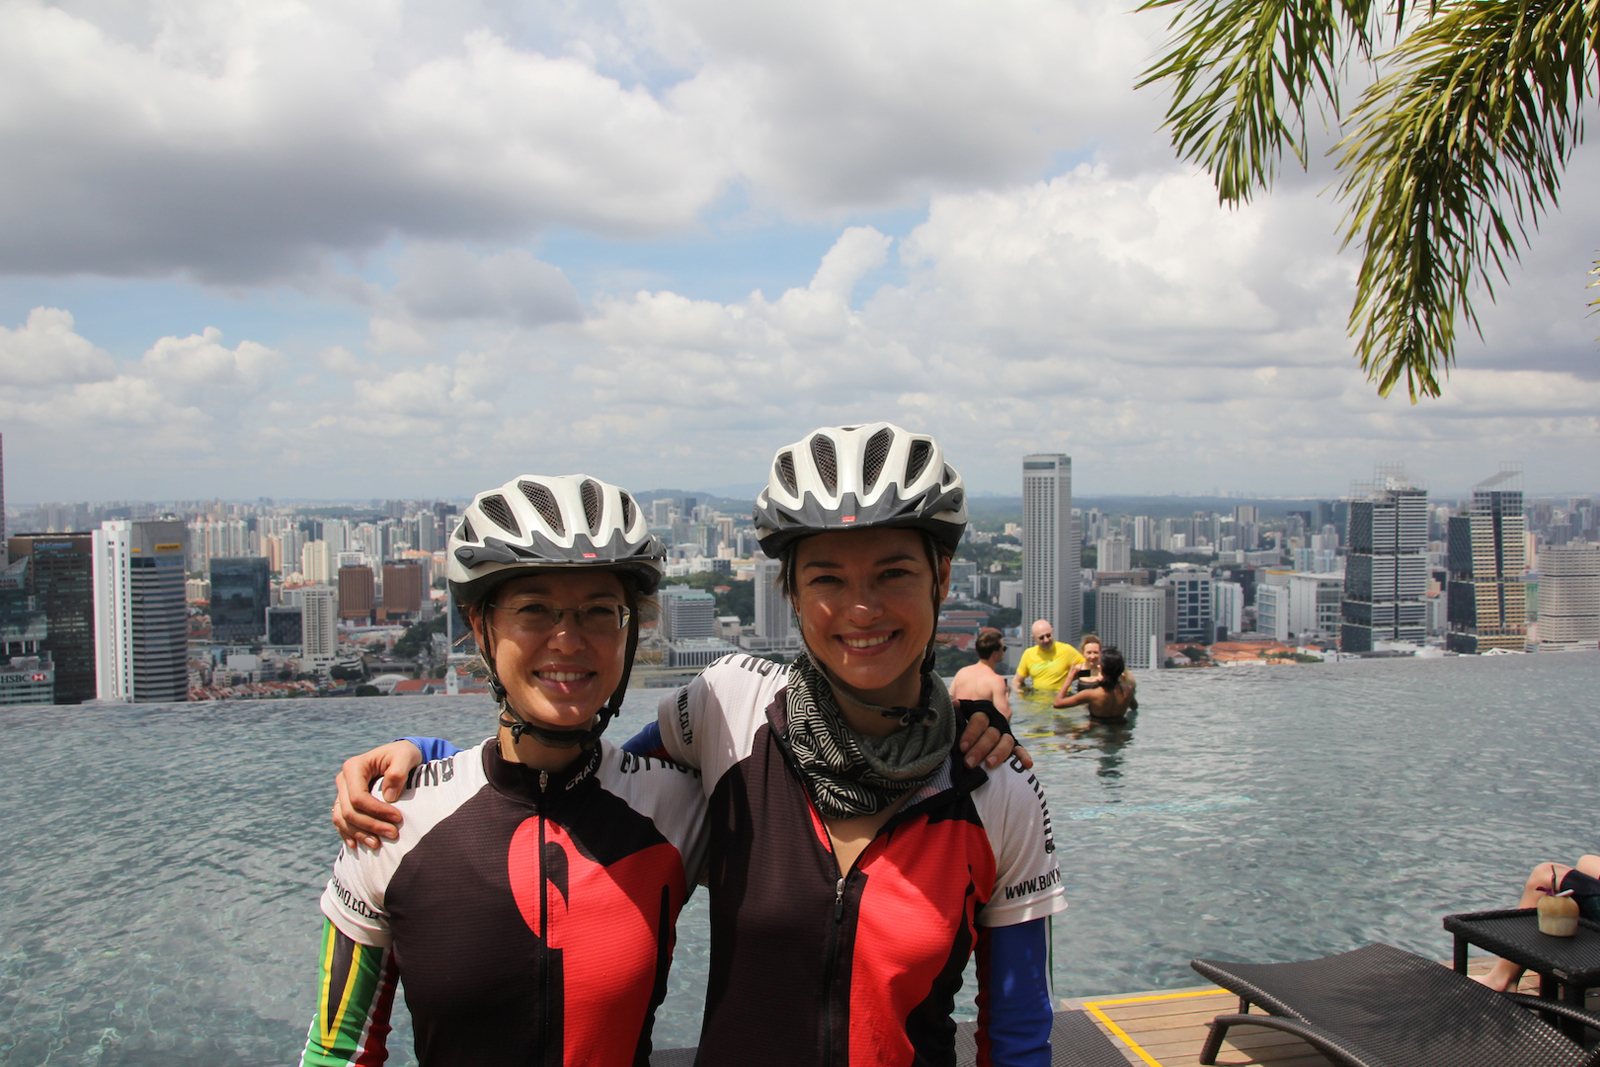 cycling-sisters-marina-bay-sands-buy-no-rhino